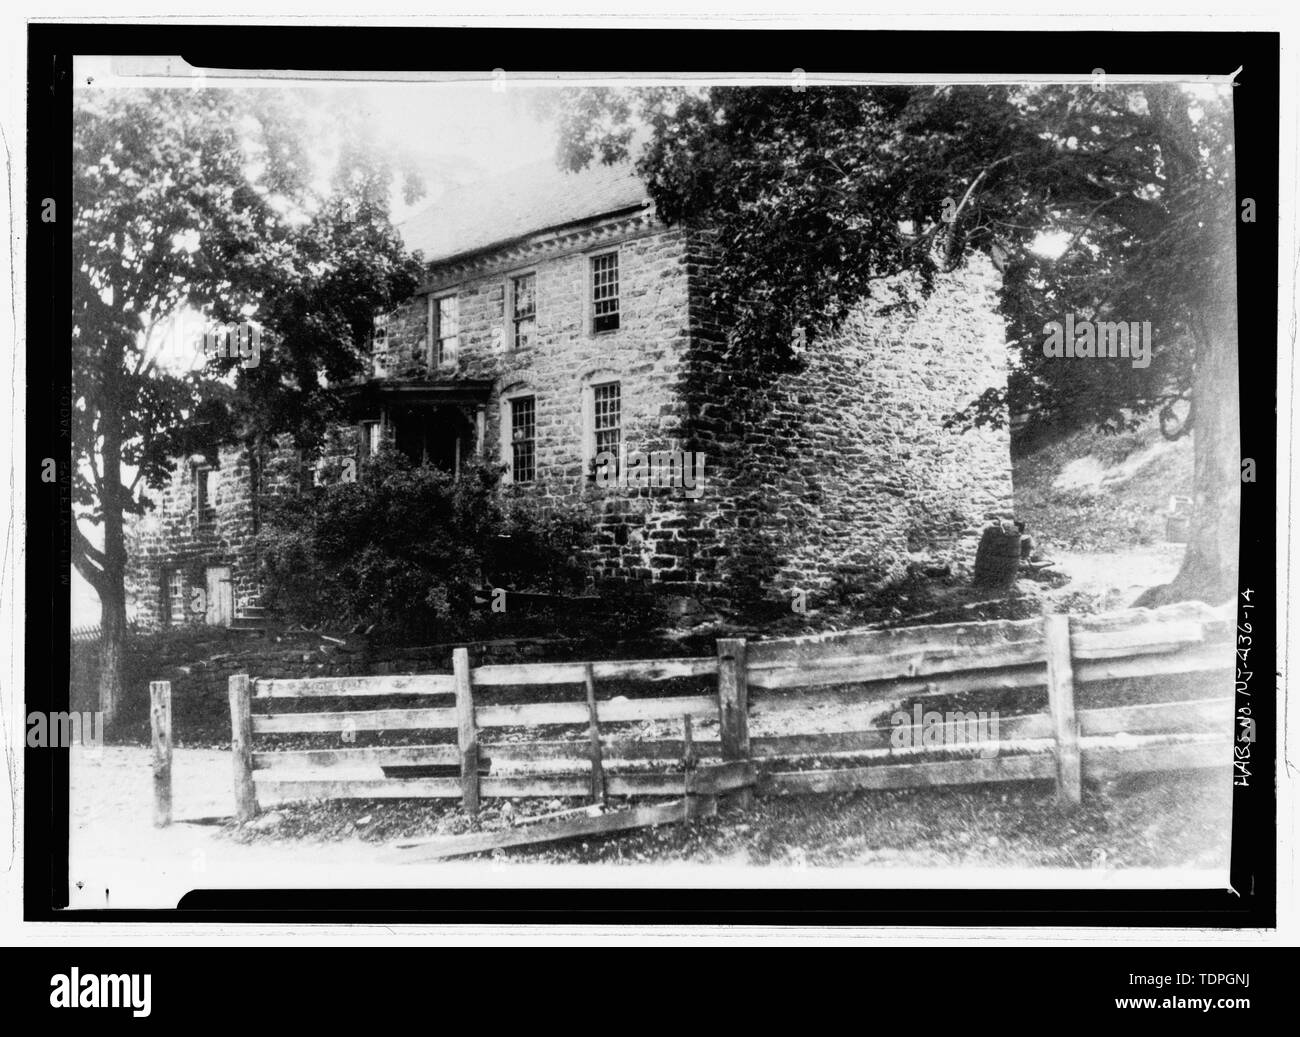 Photographer unknown, ca. 1910 NORTHWEST AND SOUTHWEST ELEVATIONS - Isaac Van Campen House, Old Mine Road, Wallpack Center, Sussex County, NJ - Stock Image